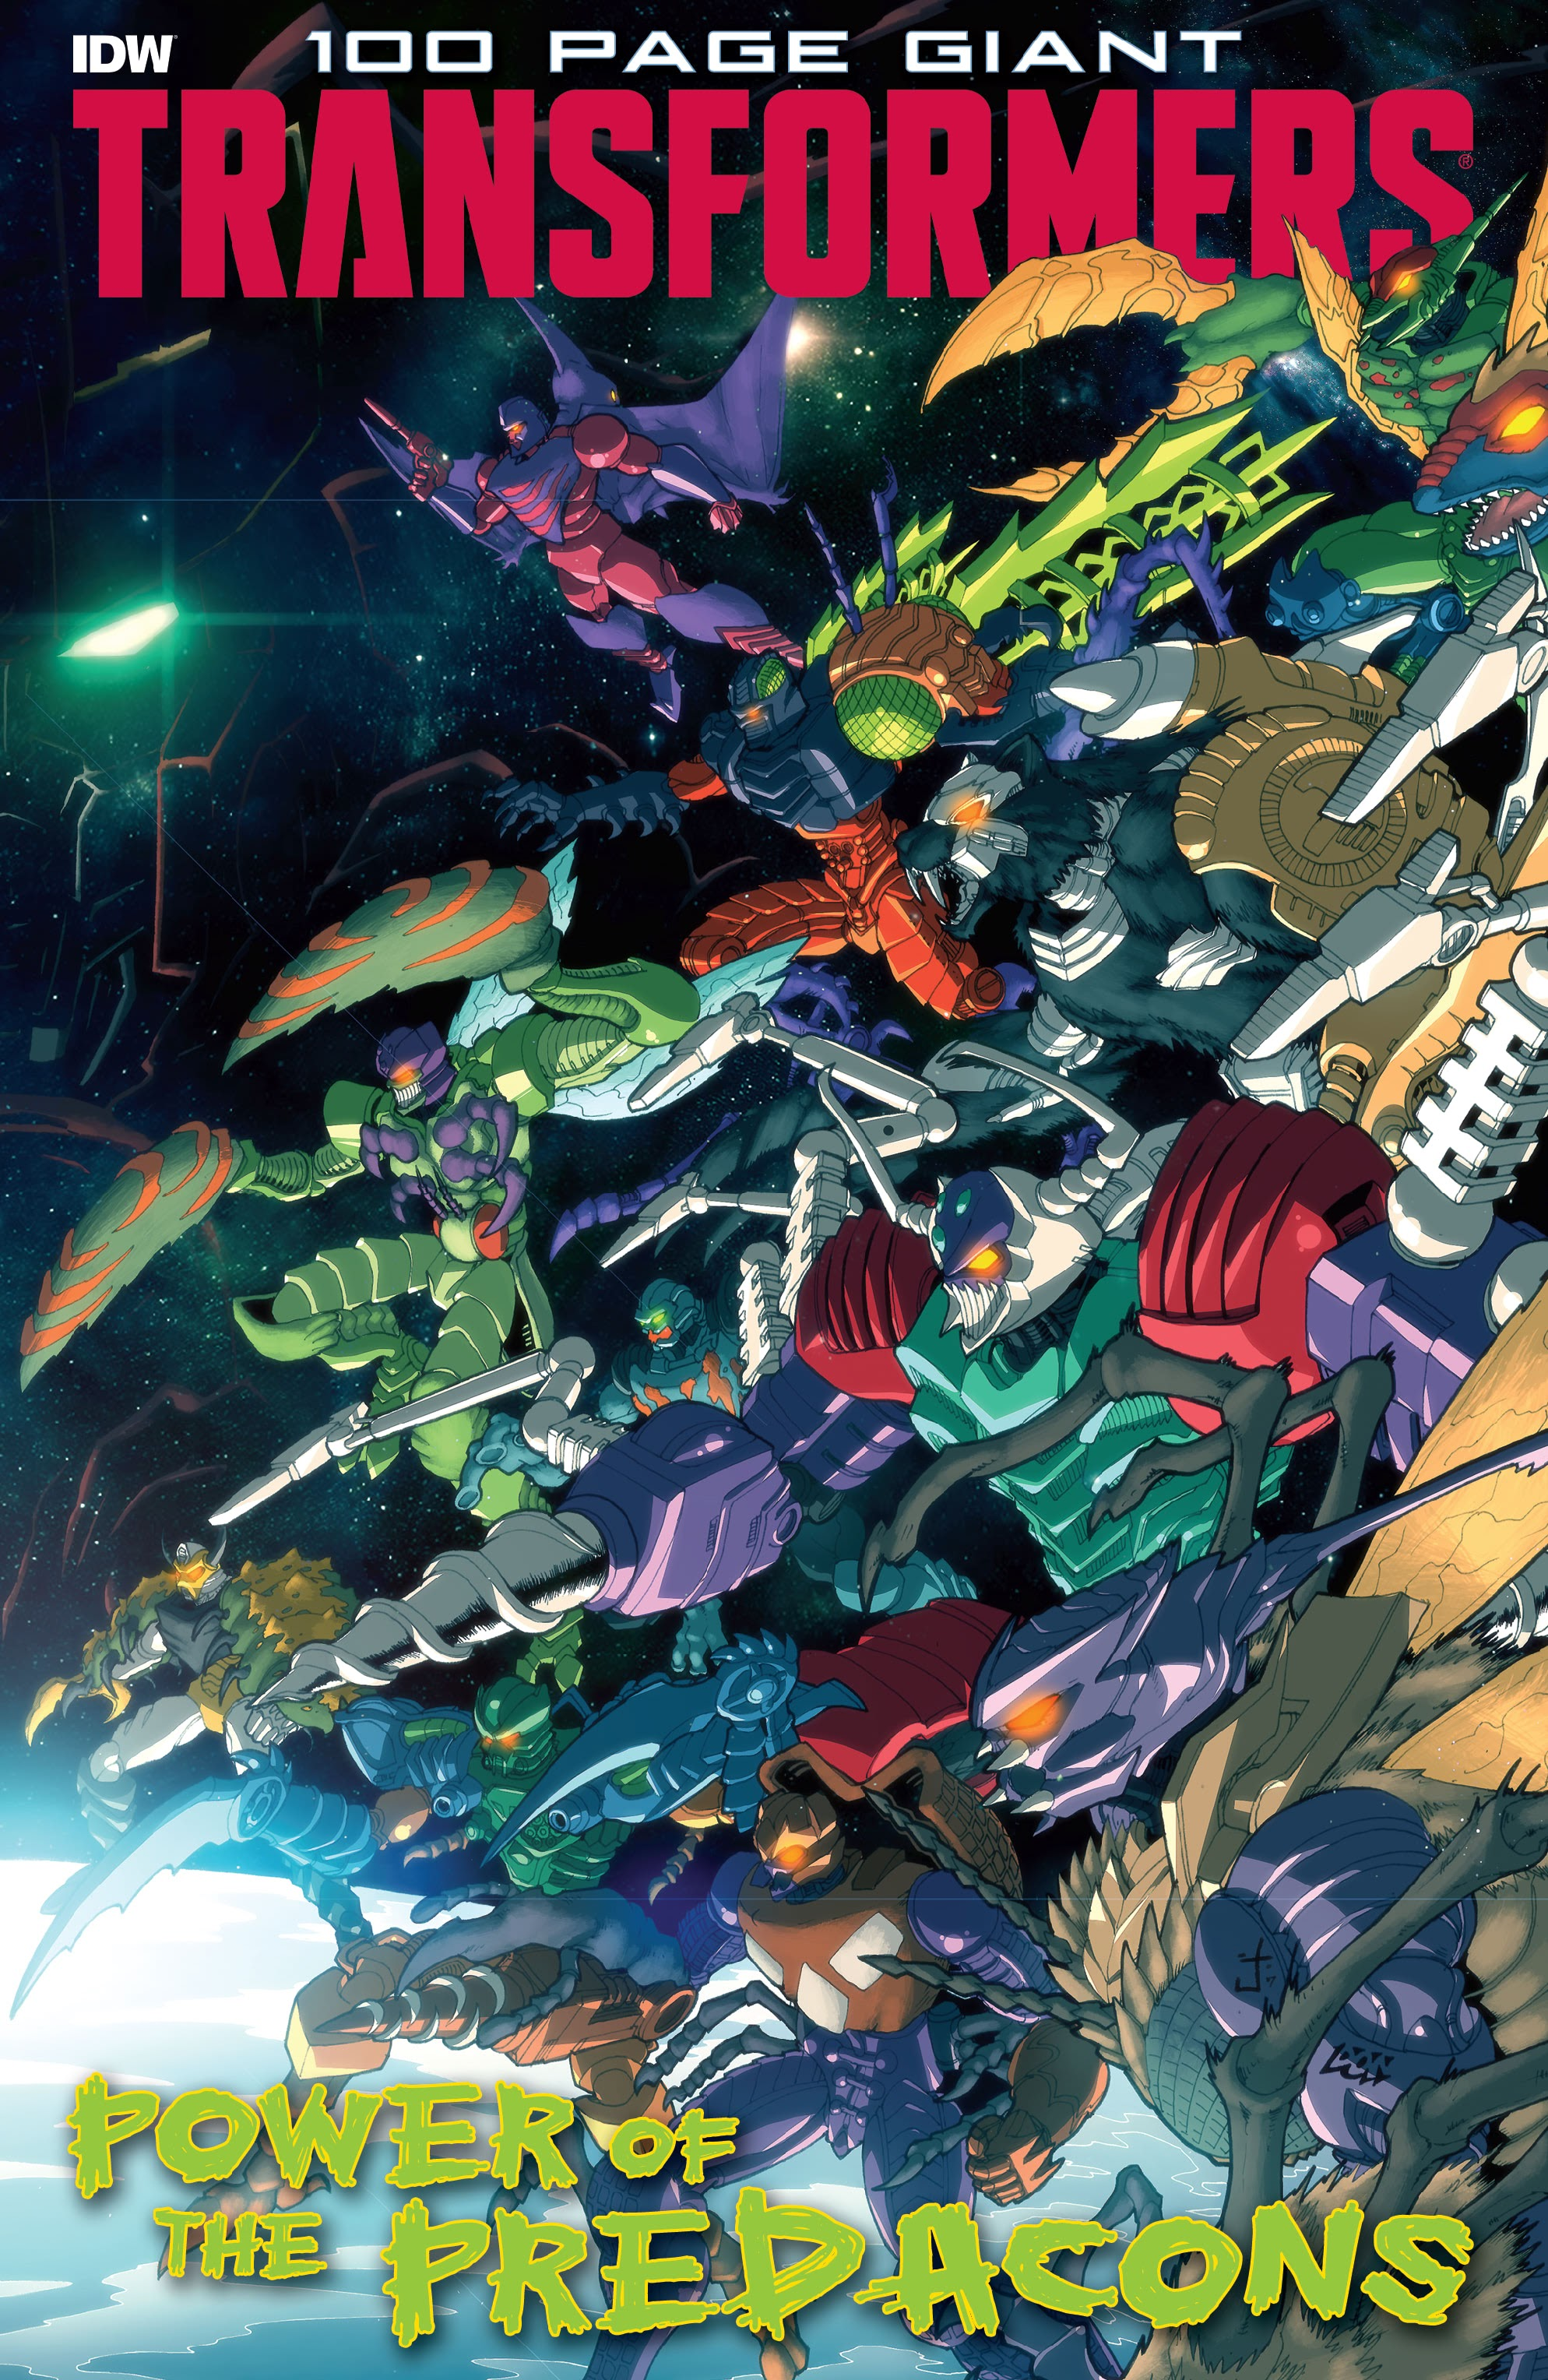 Transformers 100-Page Giant: Power of the Predacons TPB Page 1